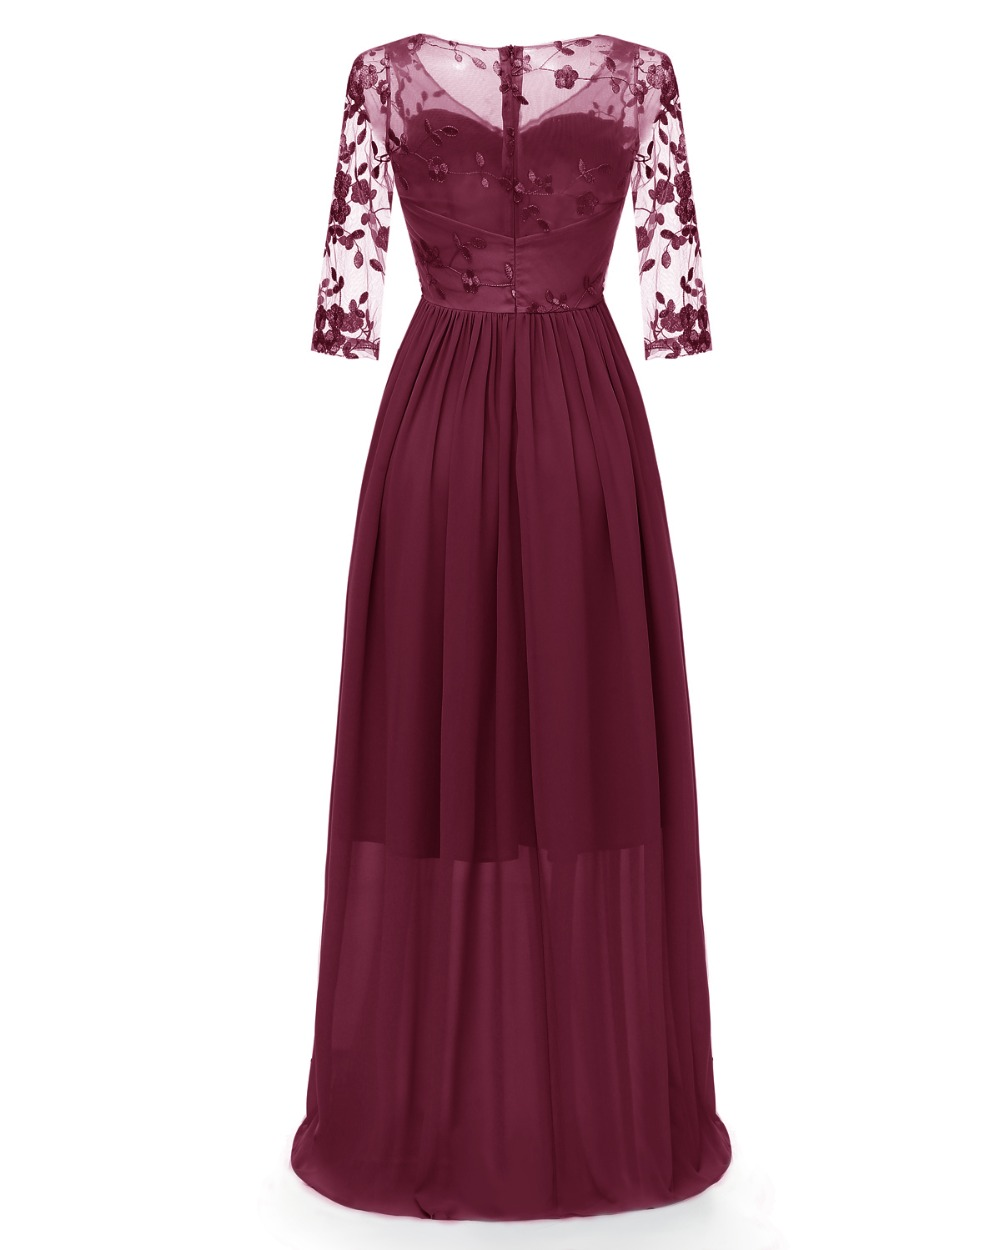 Women Floral Embroidery Lace Illusion Long Dress 3/4 Sleeve Sheer Back Maxi Dress Floor Length Formal Party Dress 5